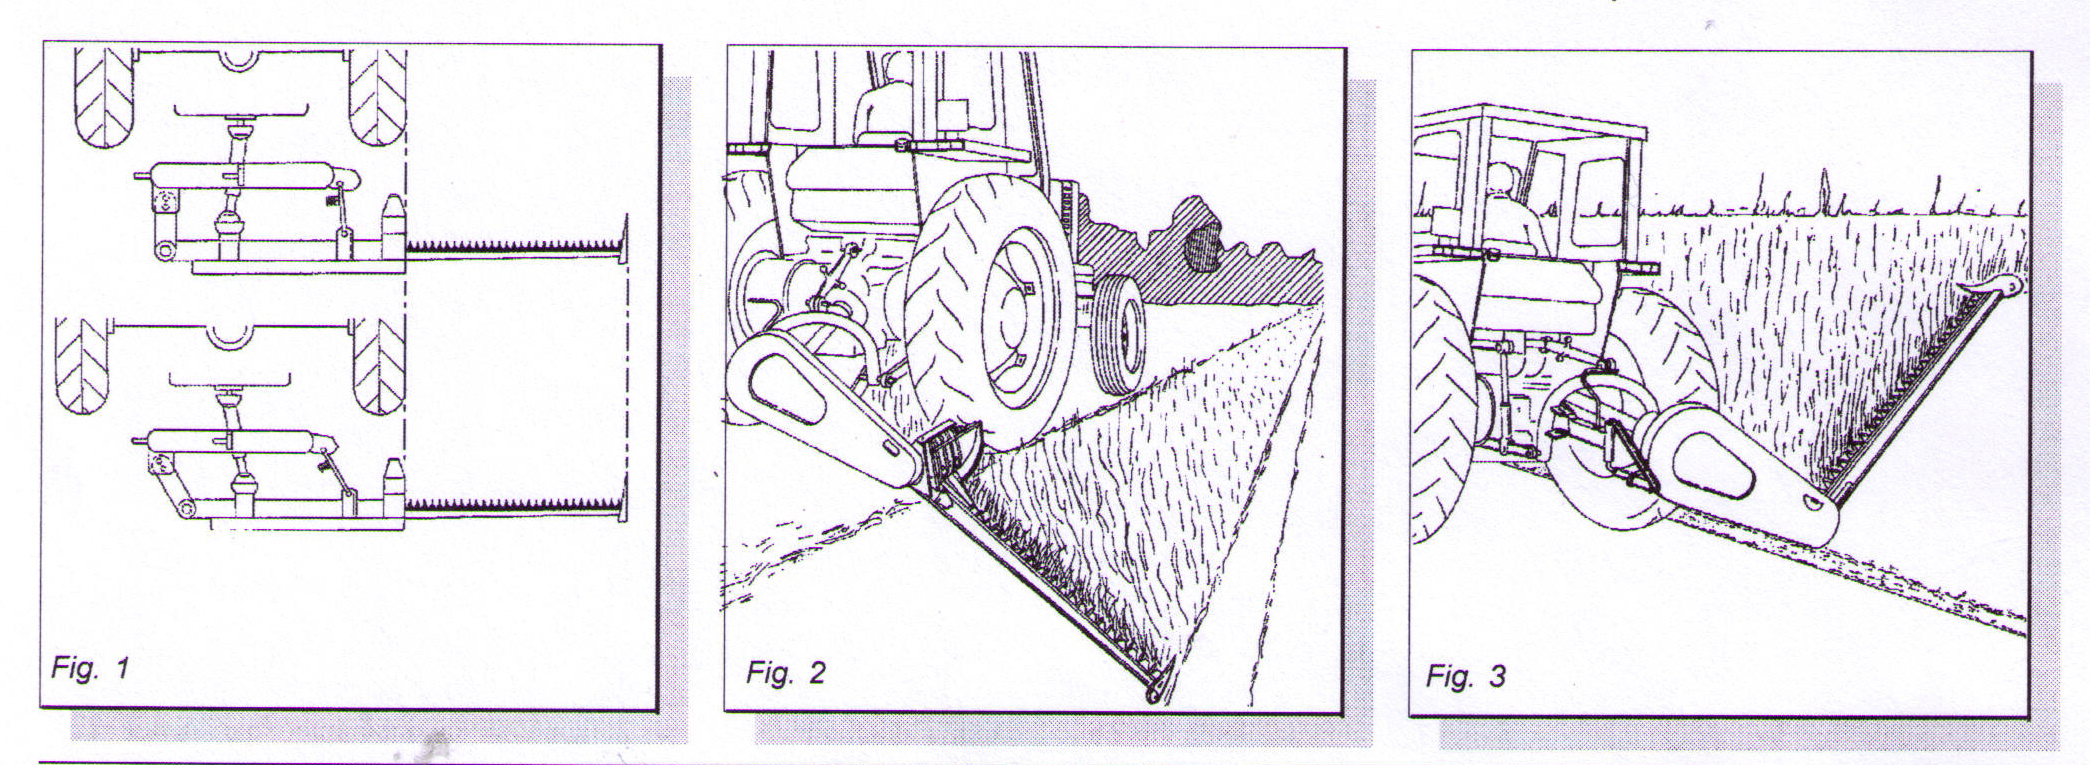 Hitch Postions And Bar Positions - Hitch connection can be shifted to right, sickle bar can be angled to mow ditch banks and hillsides.